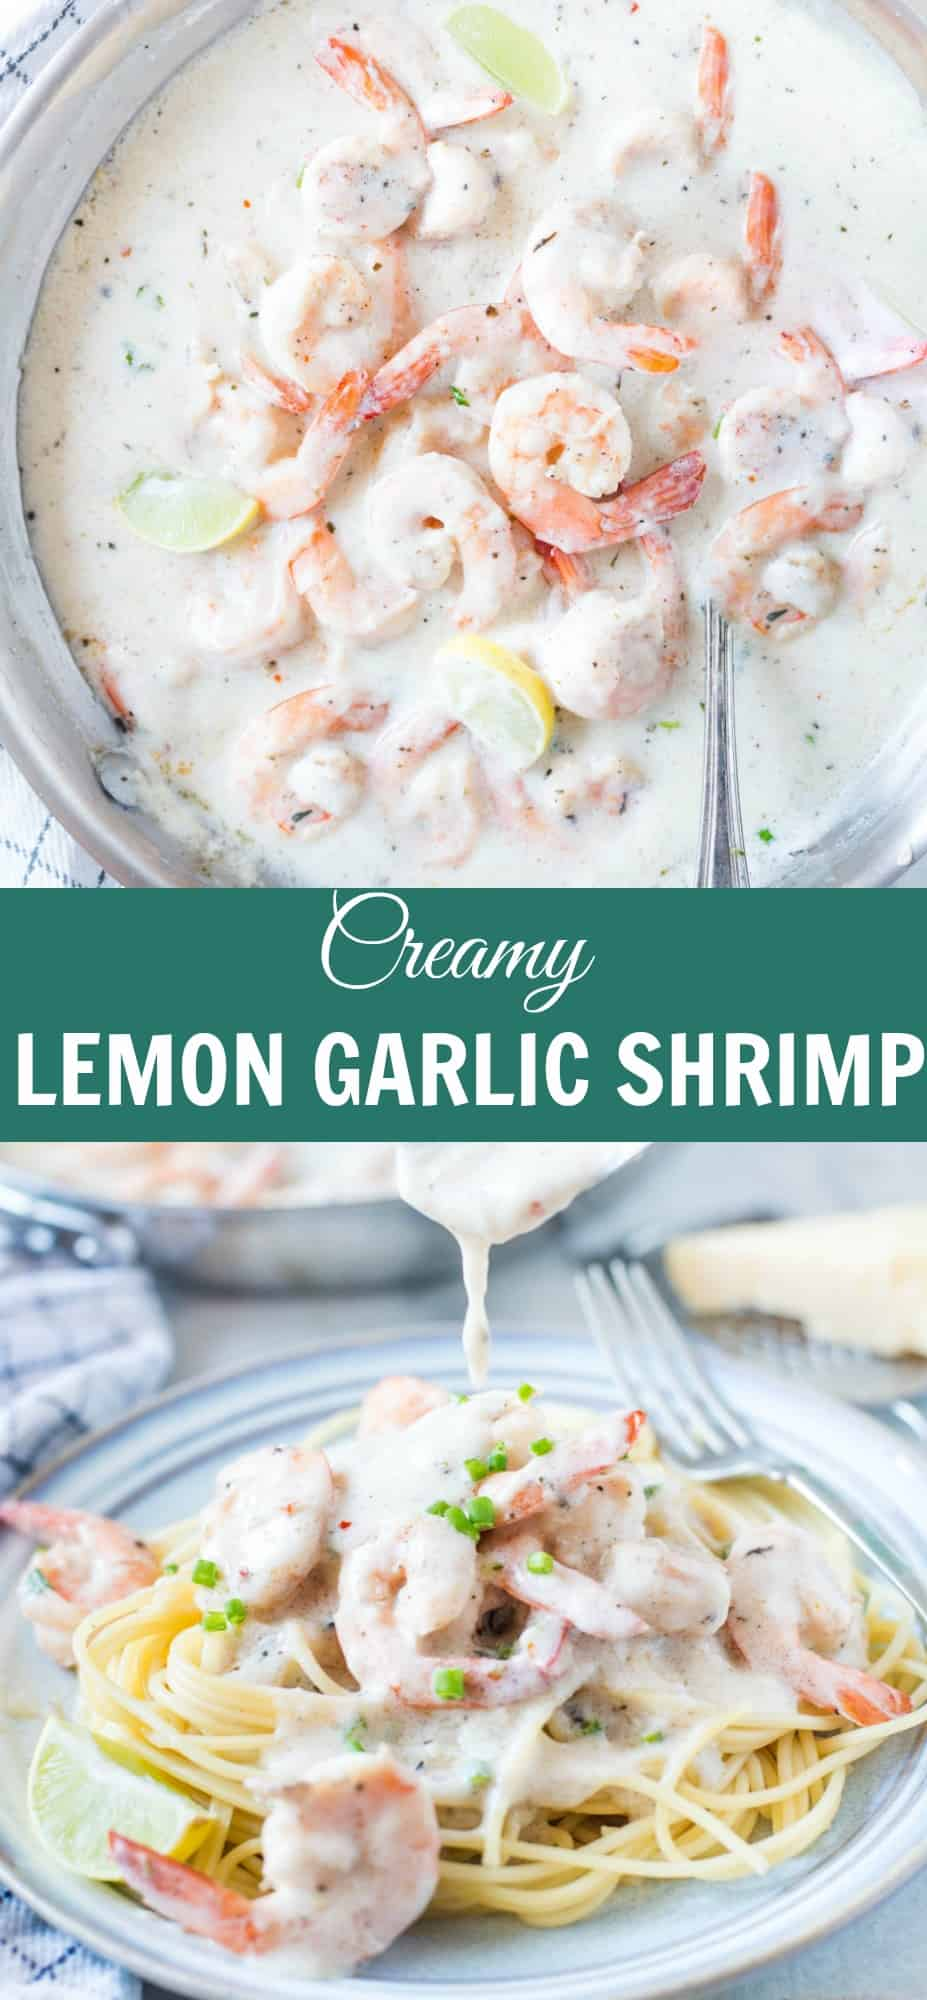 Creamy Lemon Garlic Shrimp